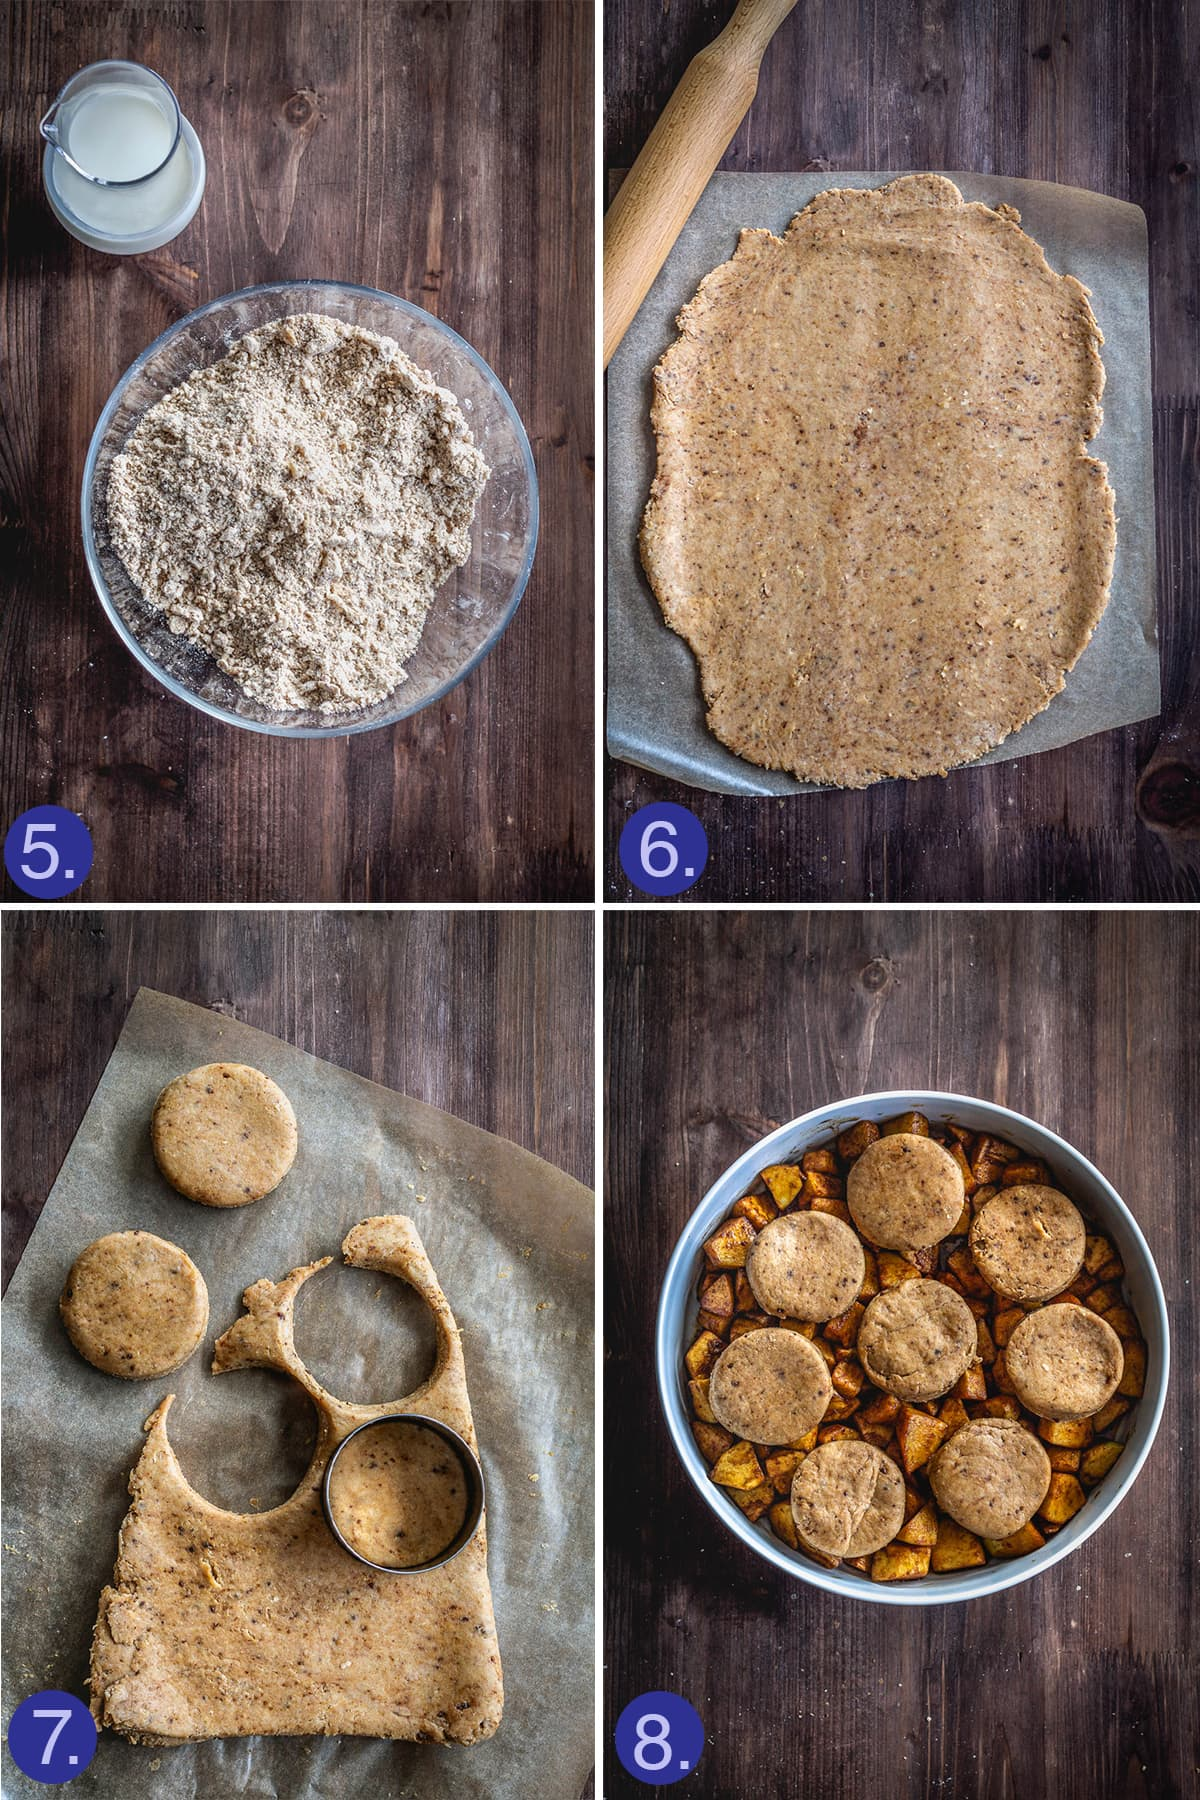 steps to make the biscuits